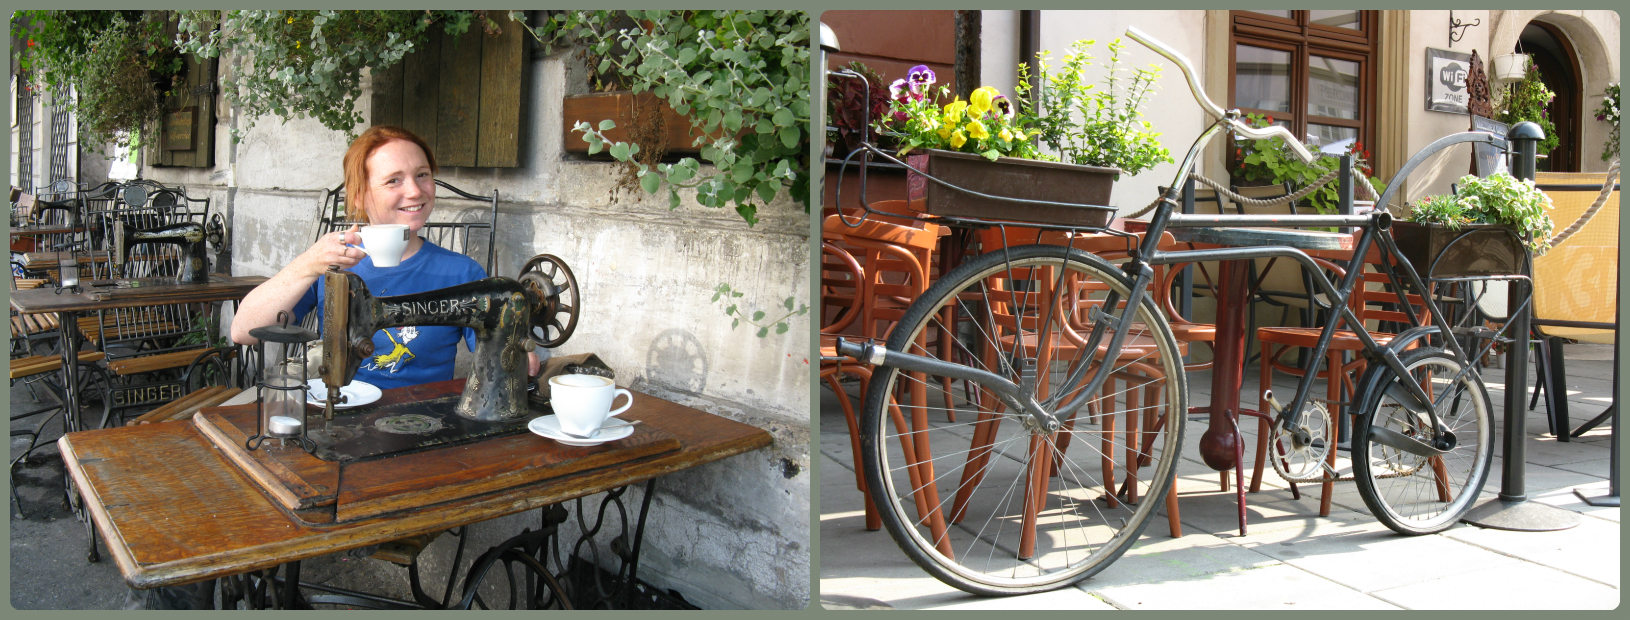 Old singer sewing machines incorporated into the cafe tables and bicycles incorporated into the railings